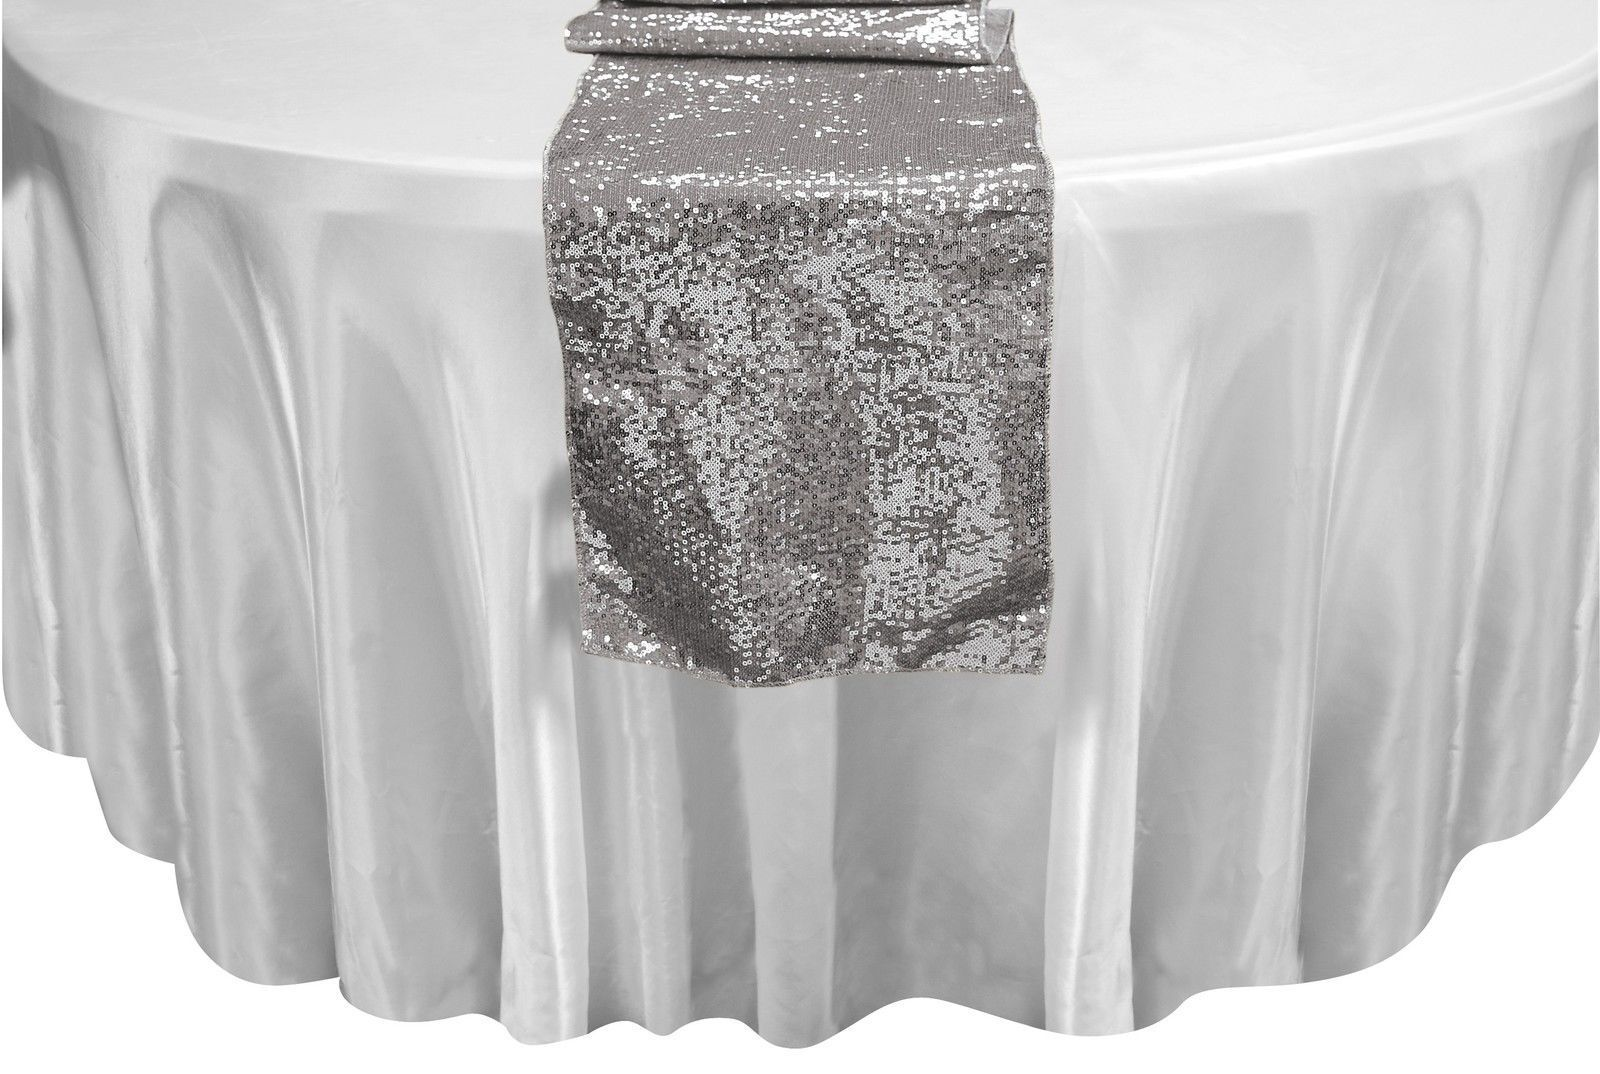 10 SEQUIN TABLE RUNNERS 12 X108 SPARKLY BEADED TABLERUNNER WEDDING EVENT PARTY